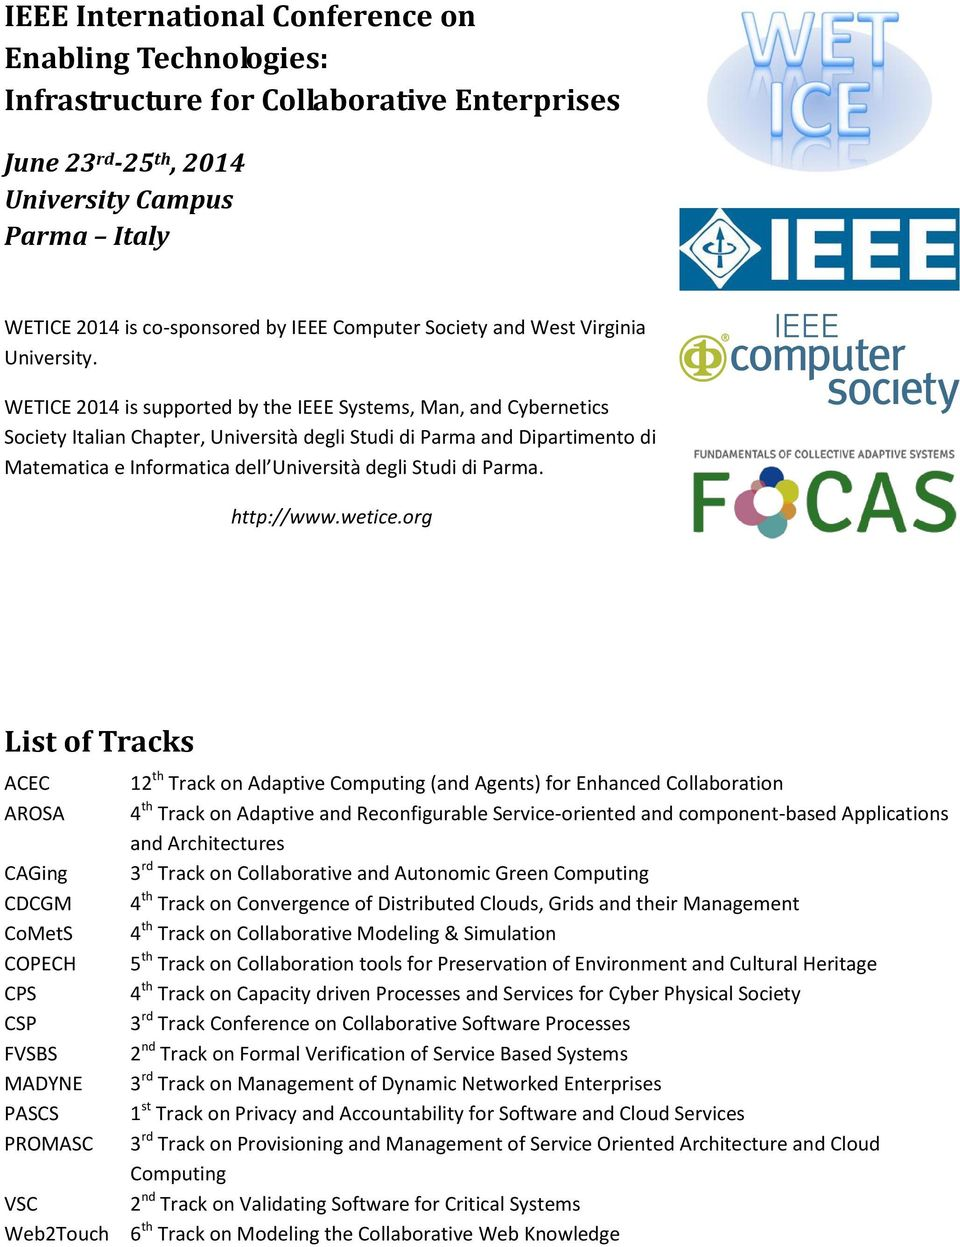 WETICE 2014 is supported by the IEEE Systems, Man, and Cybernetics Society Italian Chapter, Università degli Studi di Parma and Dipartimento di Matematica e Informatica dell Università degli Studi di